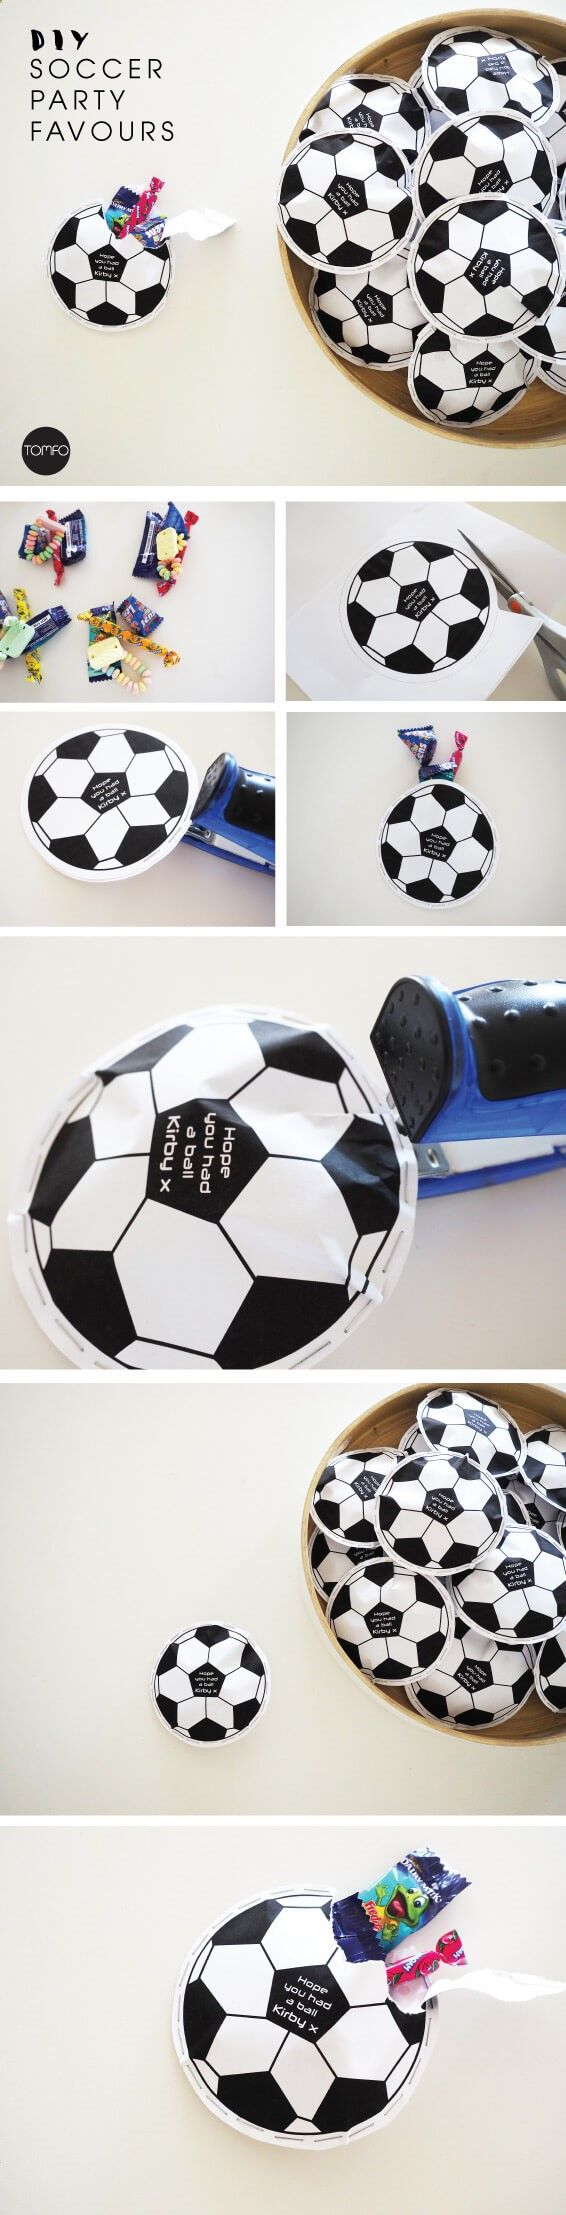 Planning a soccer party? Try these DIY Soccer Party Favours, too cute! Theres a free printable and other party ideas on this blog too.